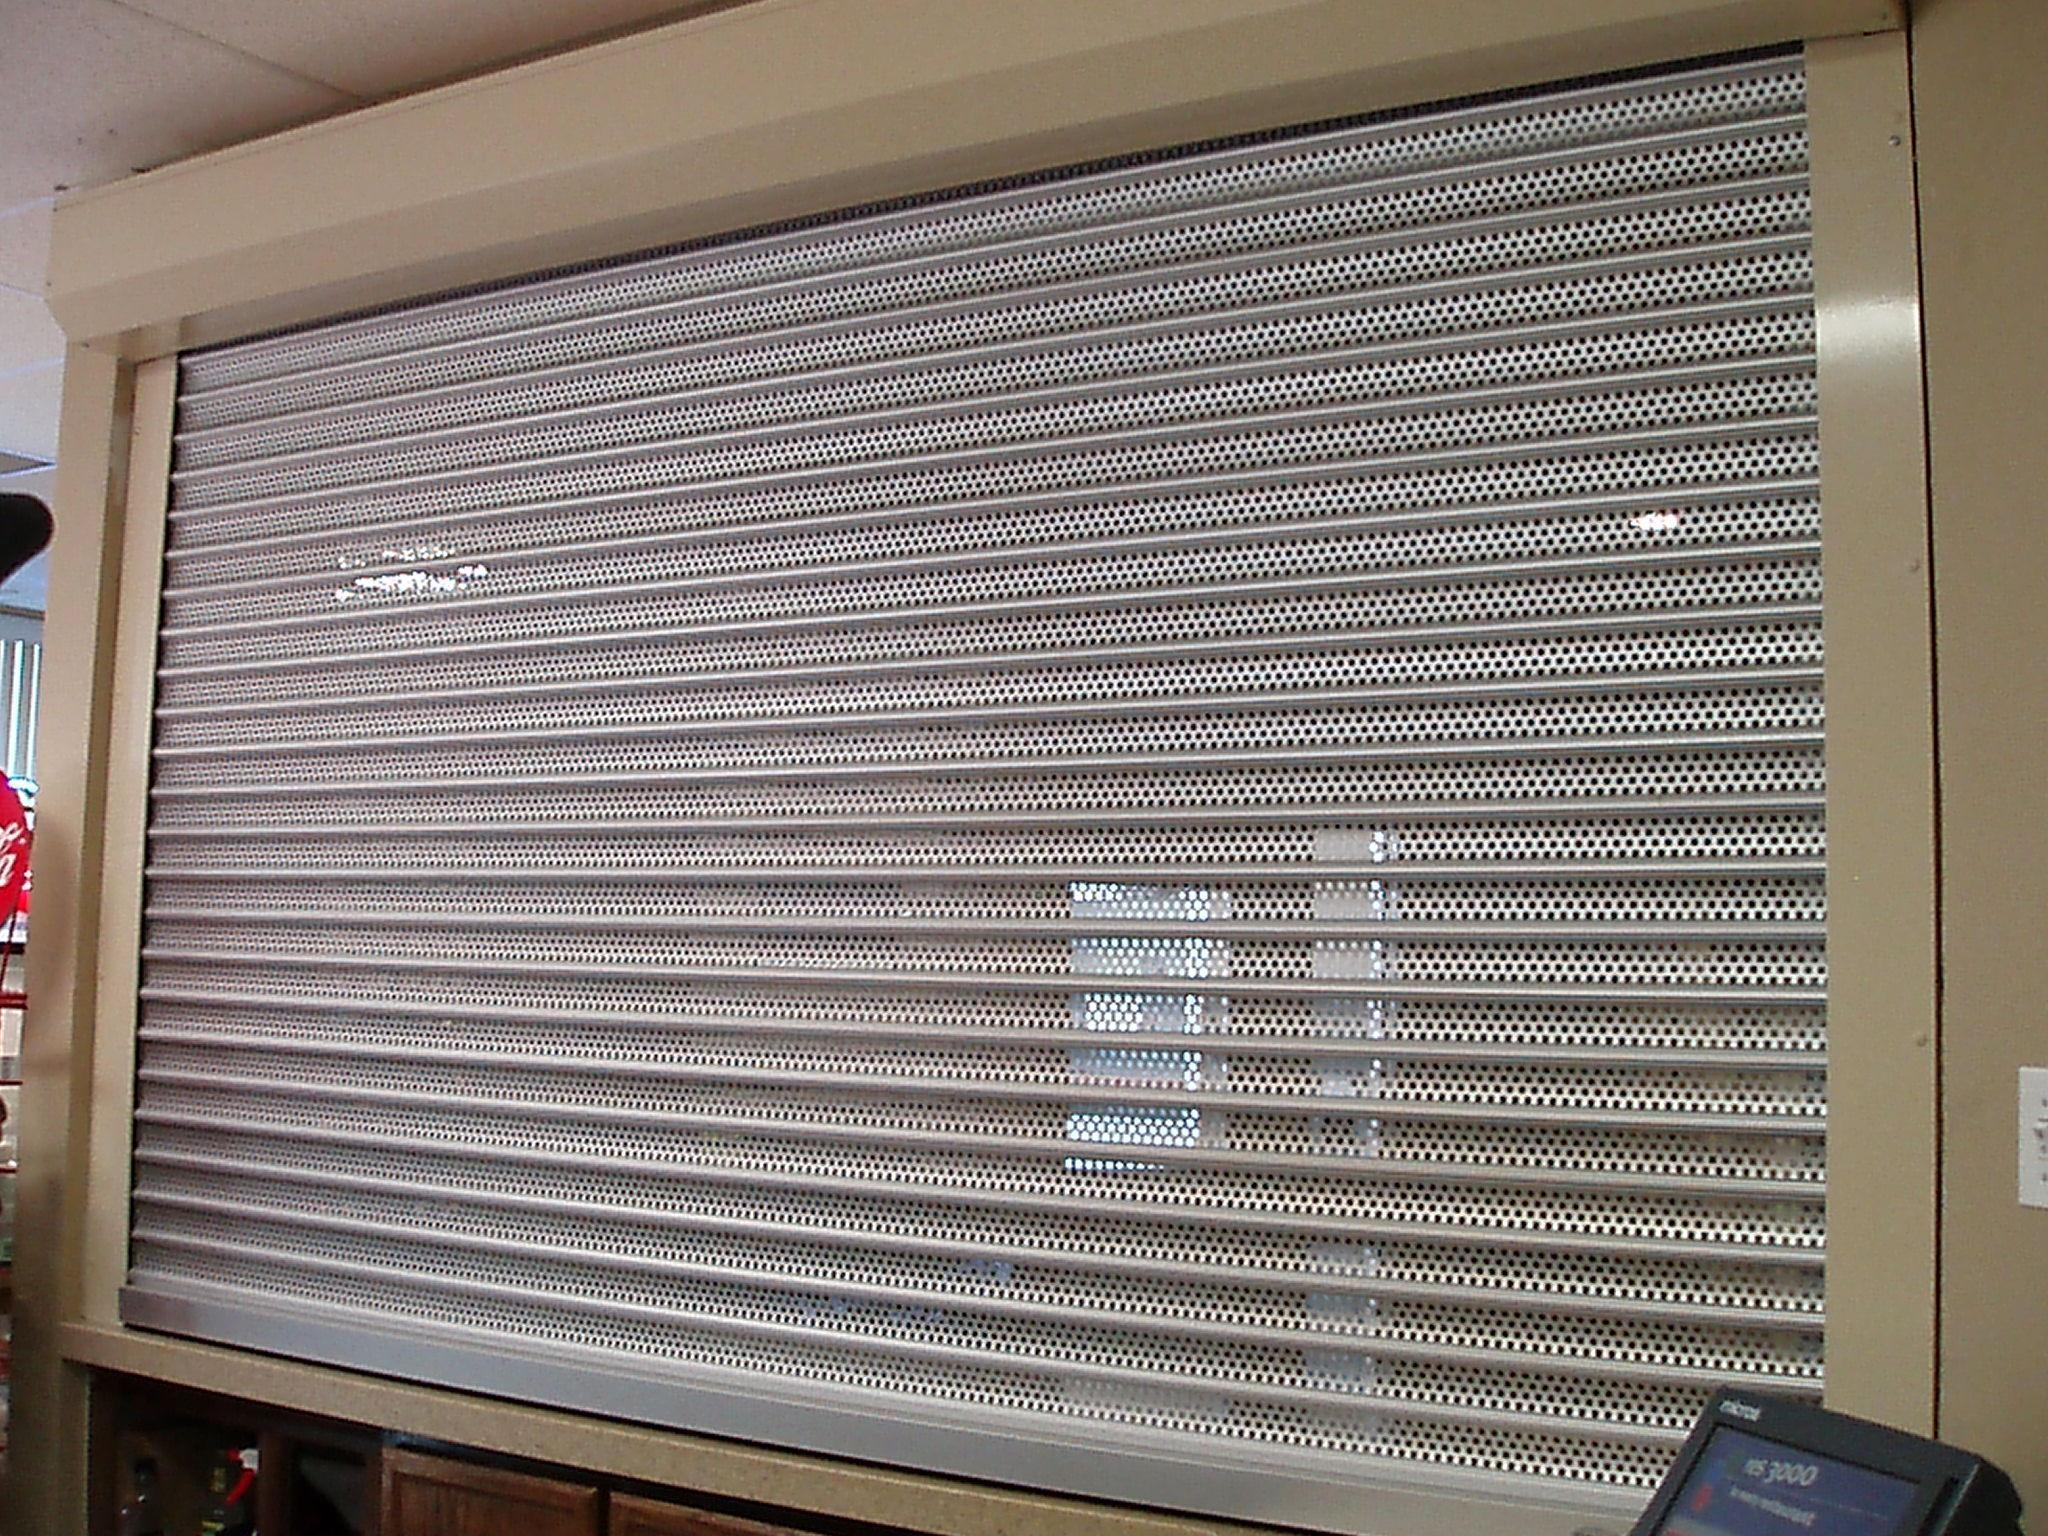 561 Series perforated roll shutter left inside view